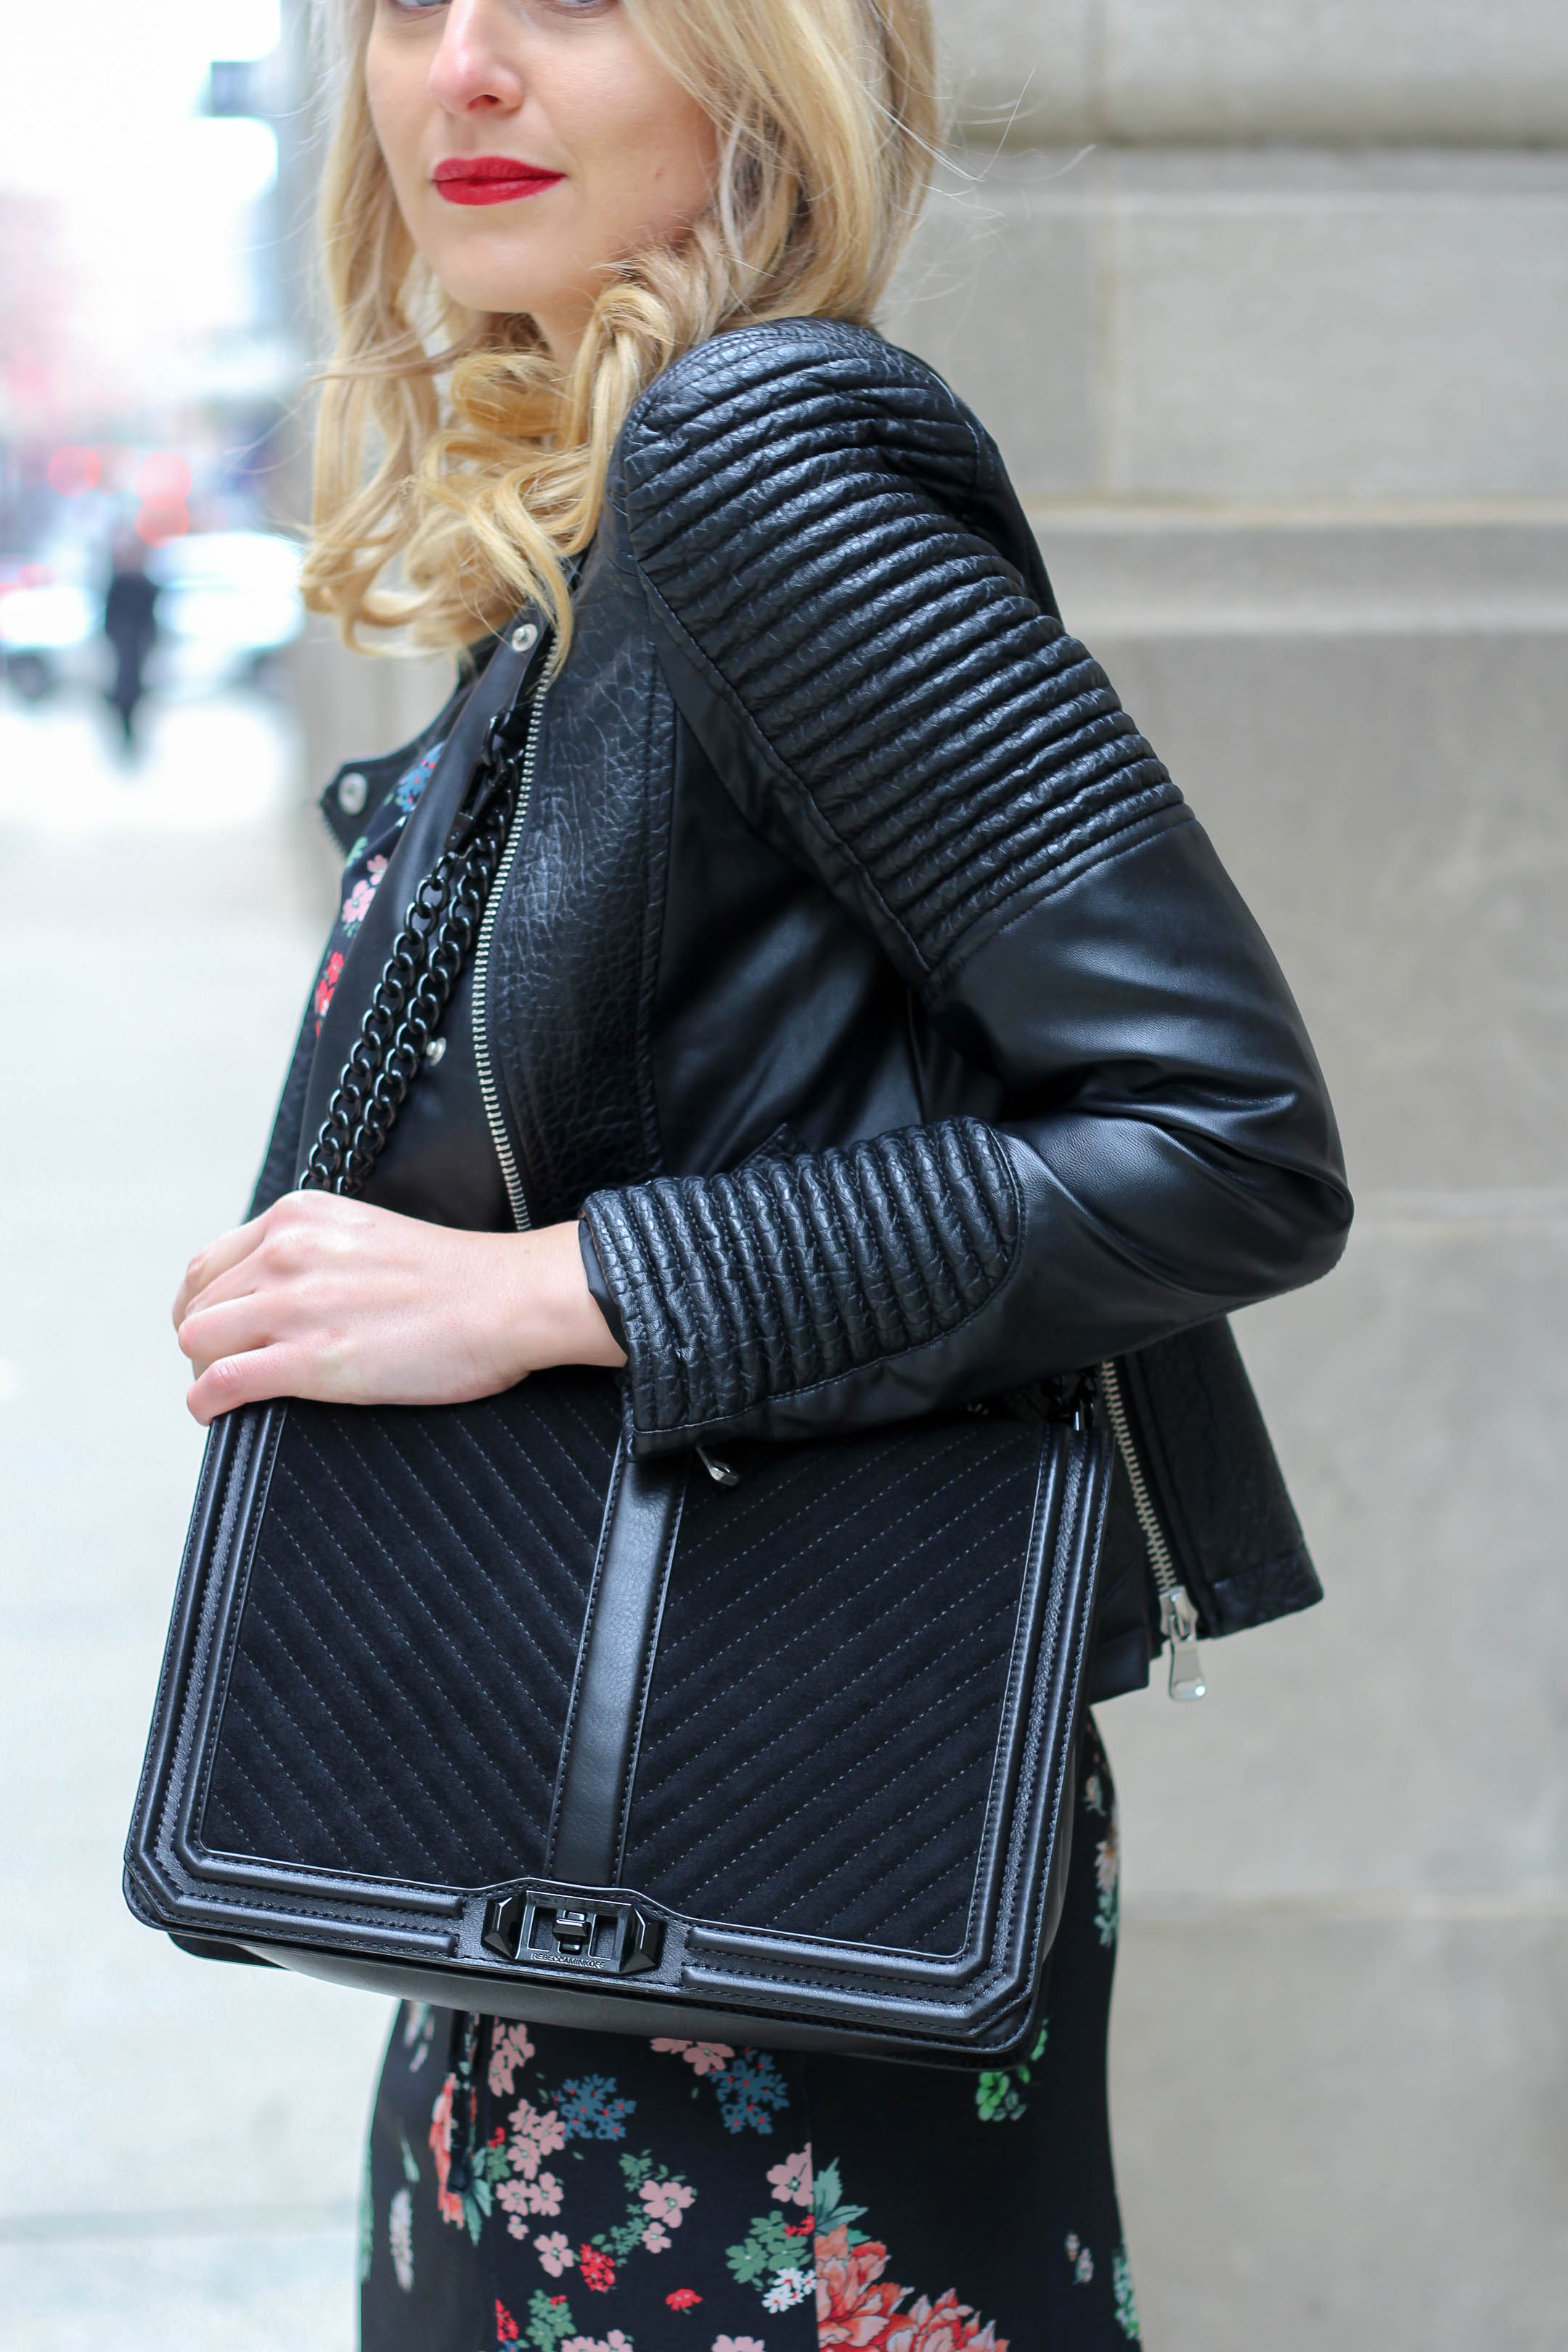 The Rebecca Minkoff quilted cross body bag